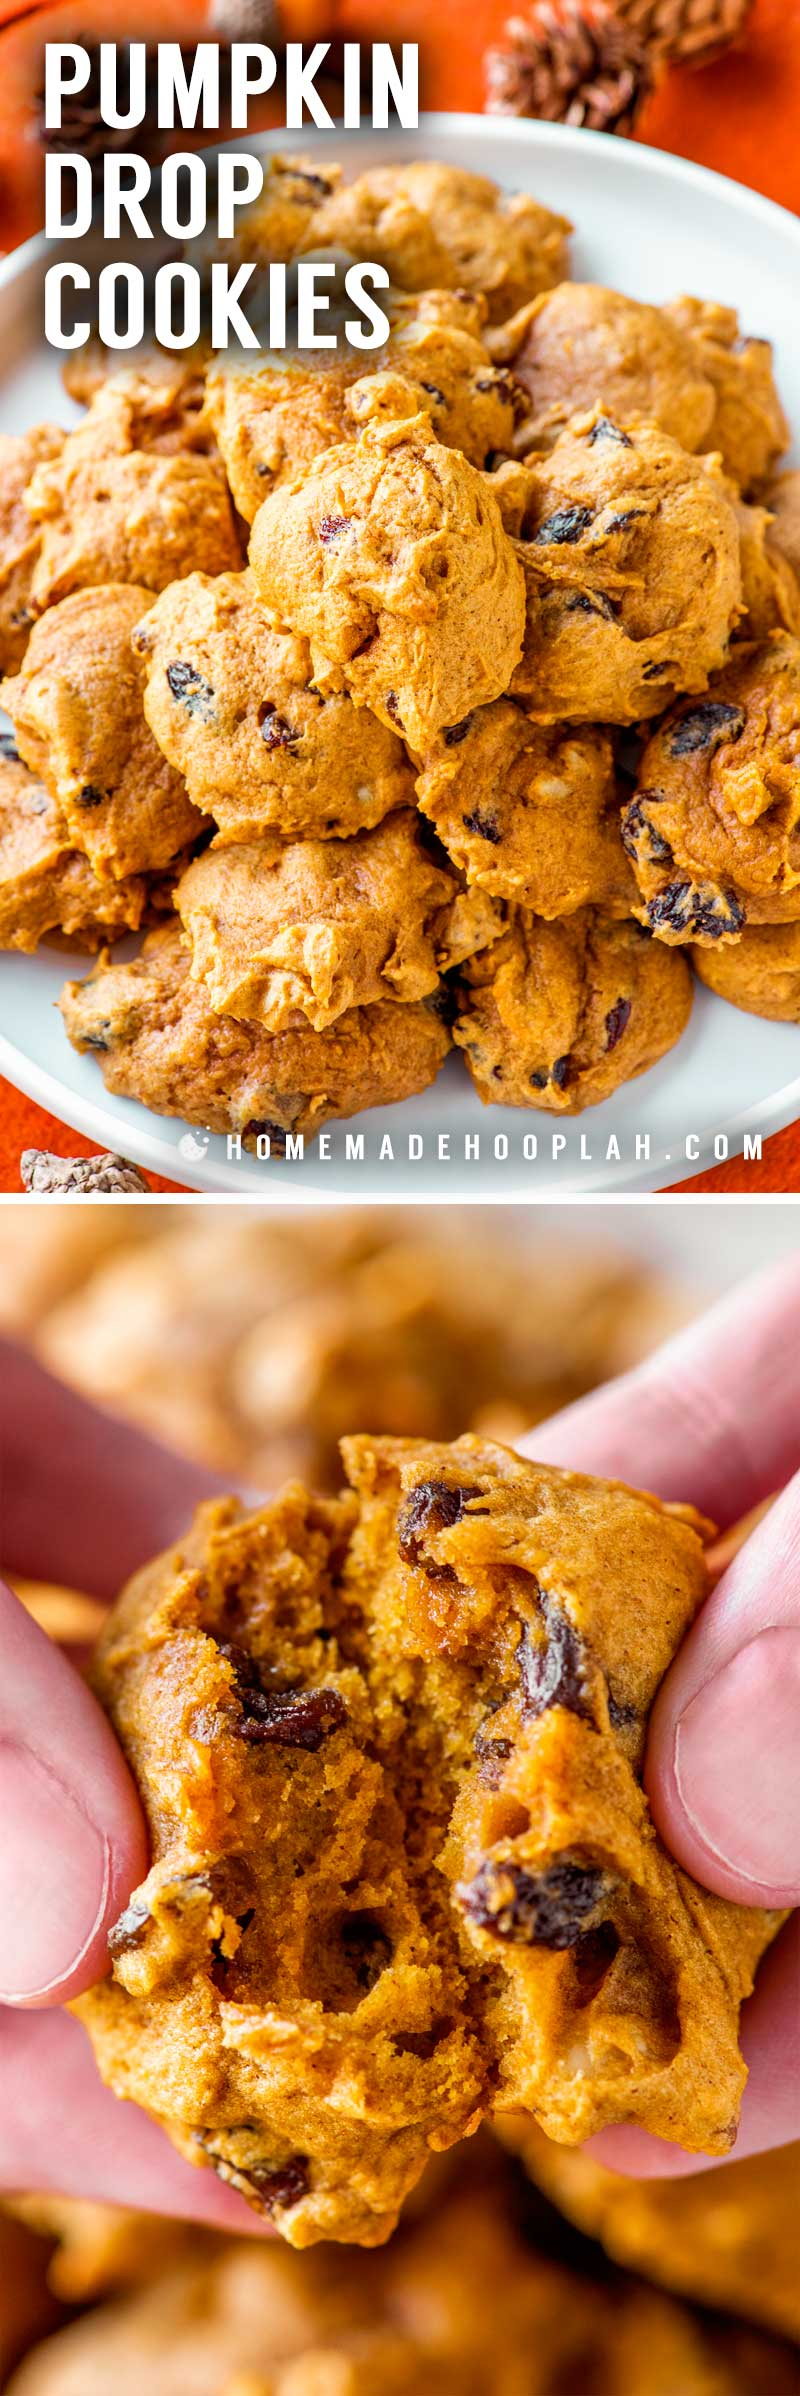 Pumpkin Drop Cookies! These ultra soft pumpkin drop cookies are laced with crunchy almonds and sweet raisins. They're the perfect treat to bake for festive fall comfort food. | HomemadeHooplah.com